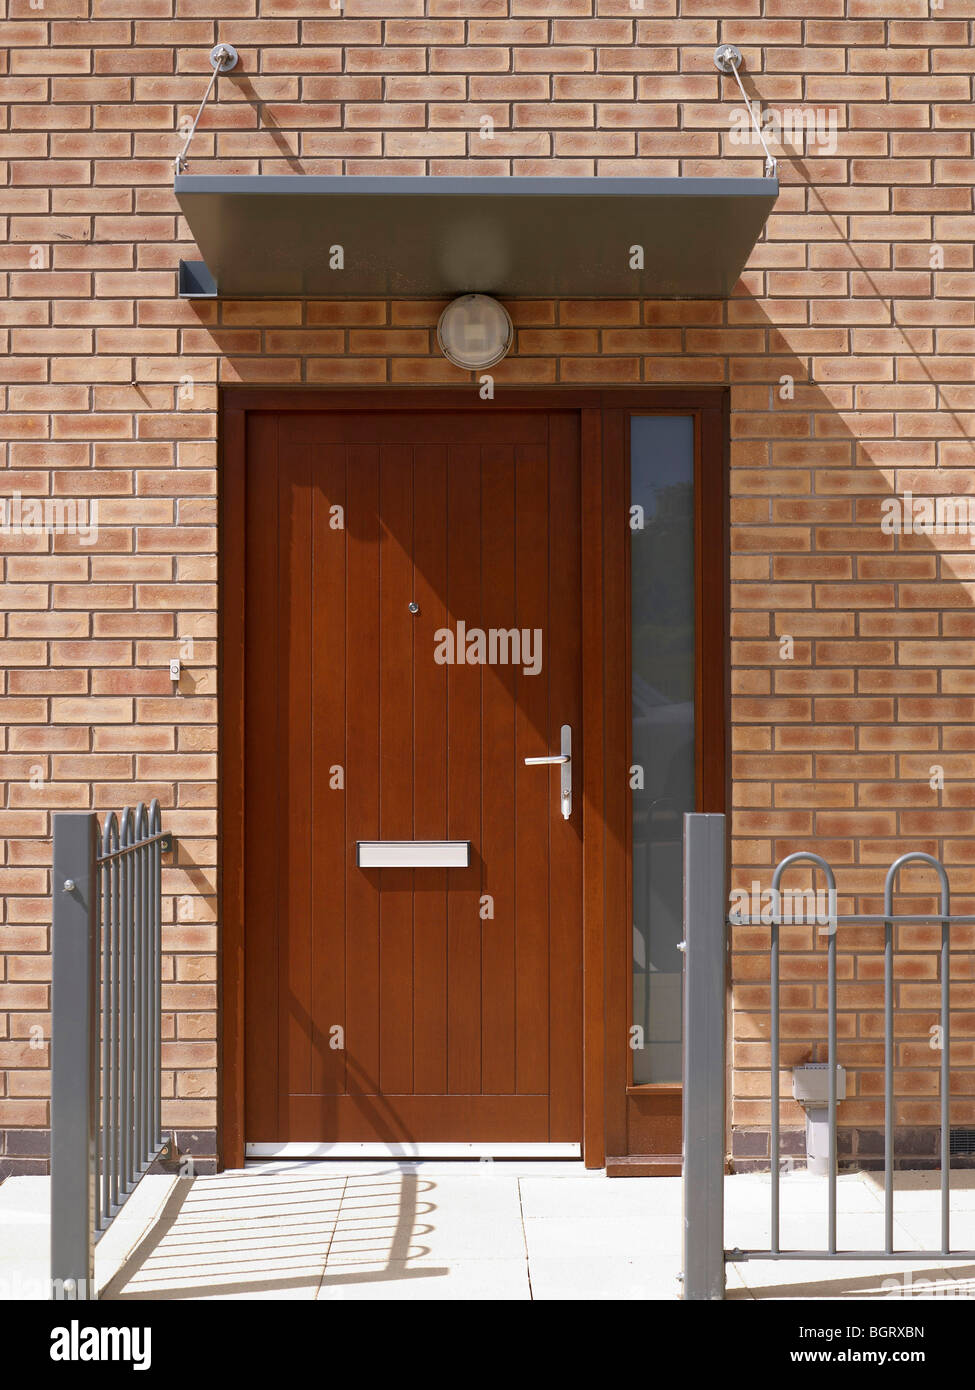 Door on modern housing Development, Northern England - Stock Image